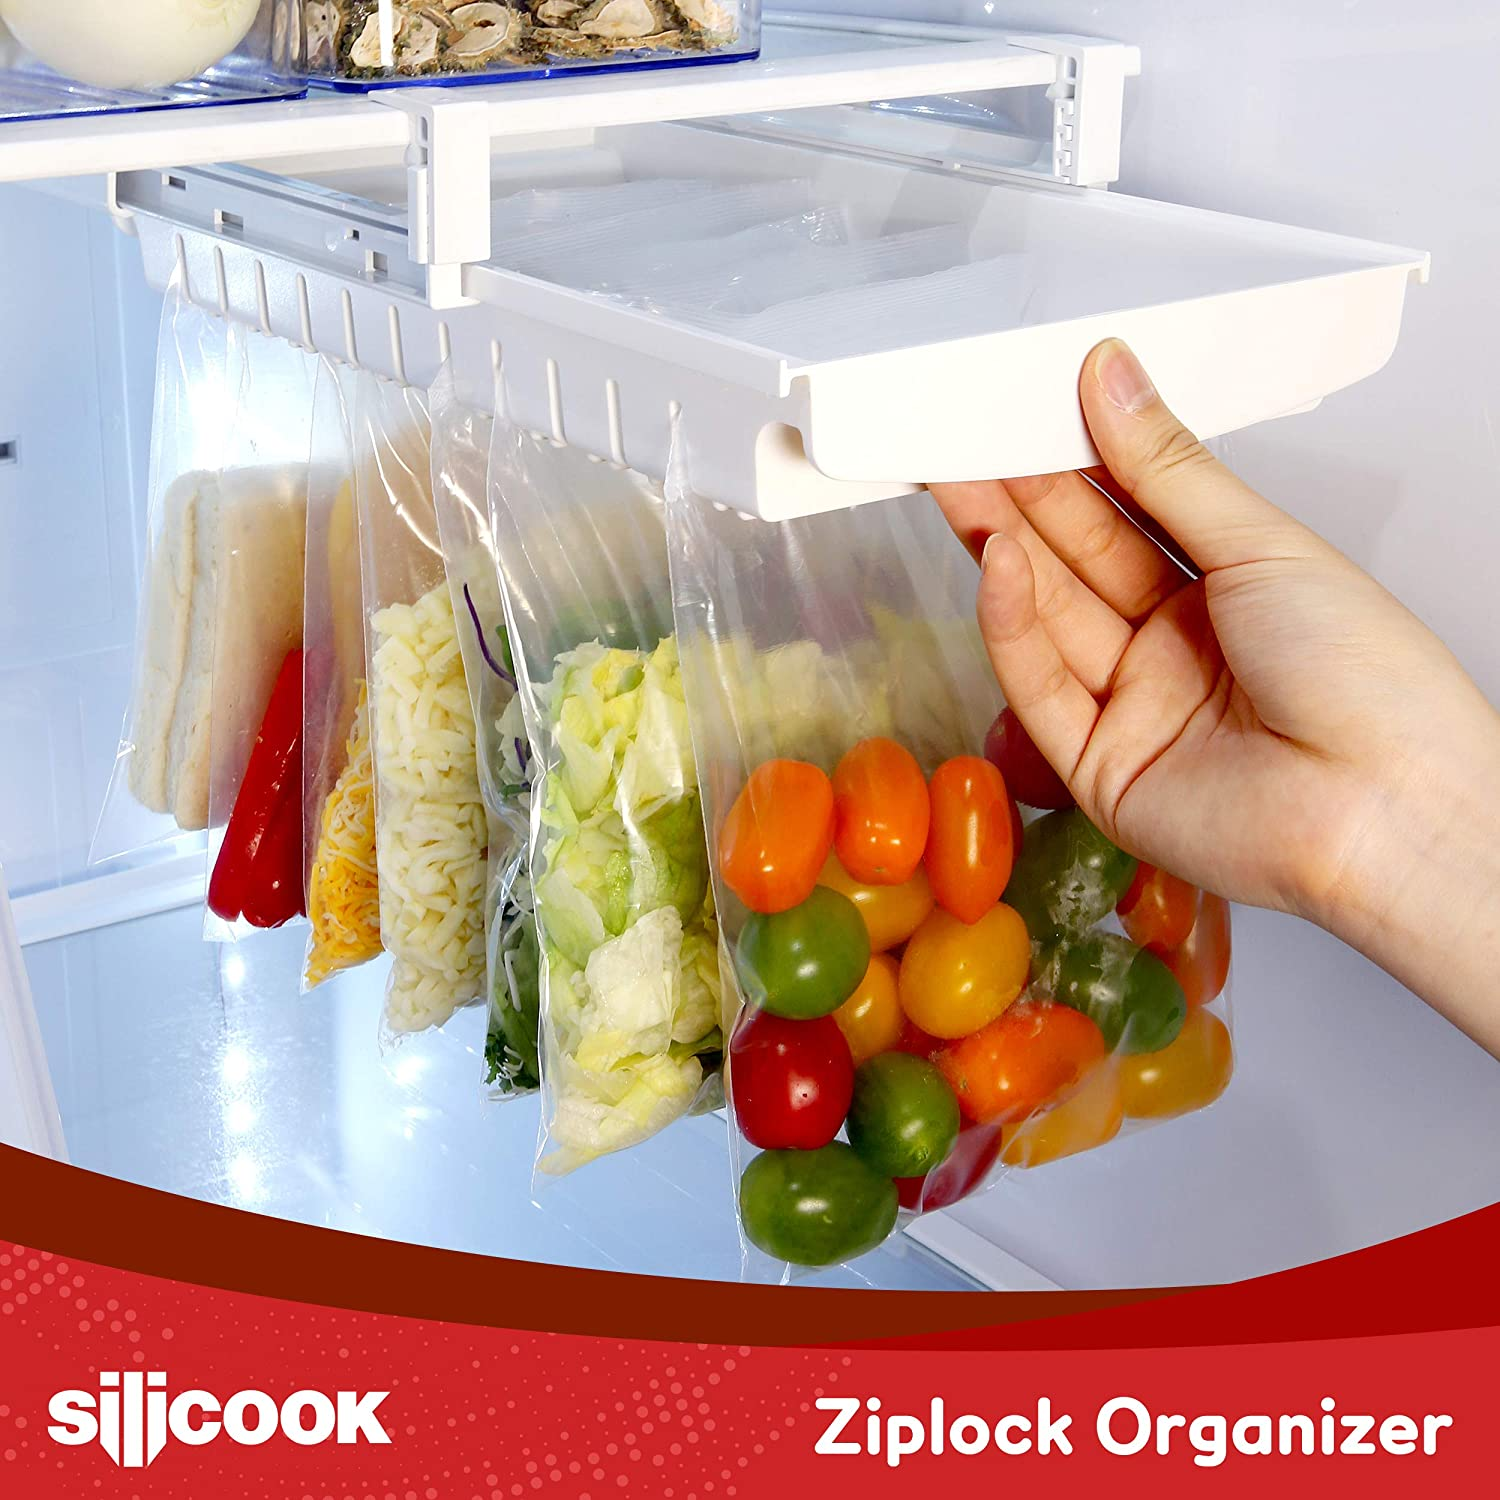 Ziplock Bag Organizer for Fridge Freezer Refrigerator Set of 25 Ziploc Bags and Vacuum Compressor - Best Solution to Clean and Organize Zipper Bag Tray Ziplock Holder Rack Hanger